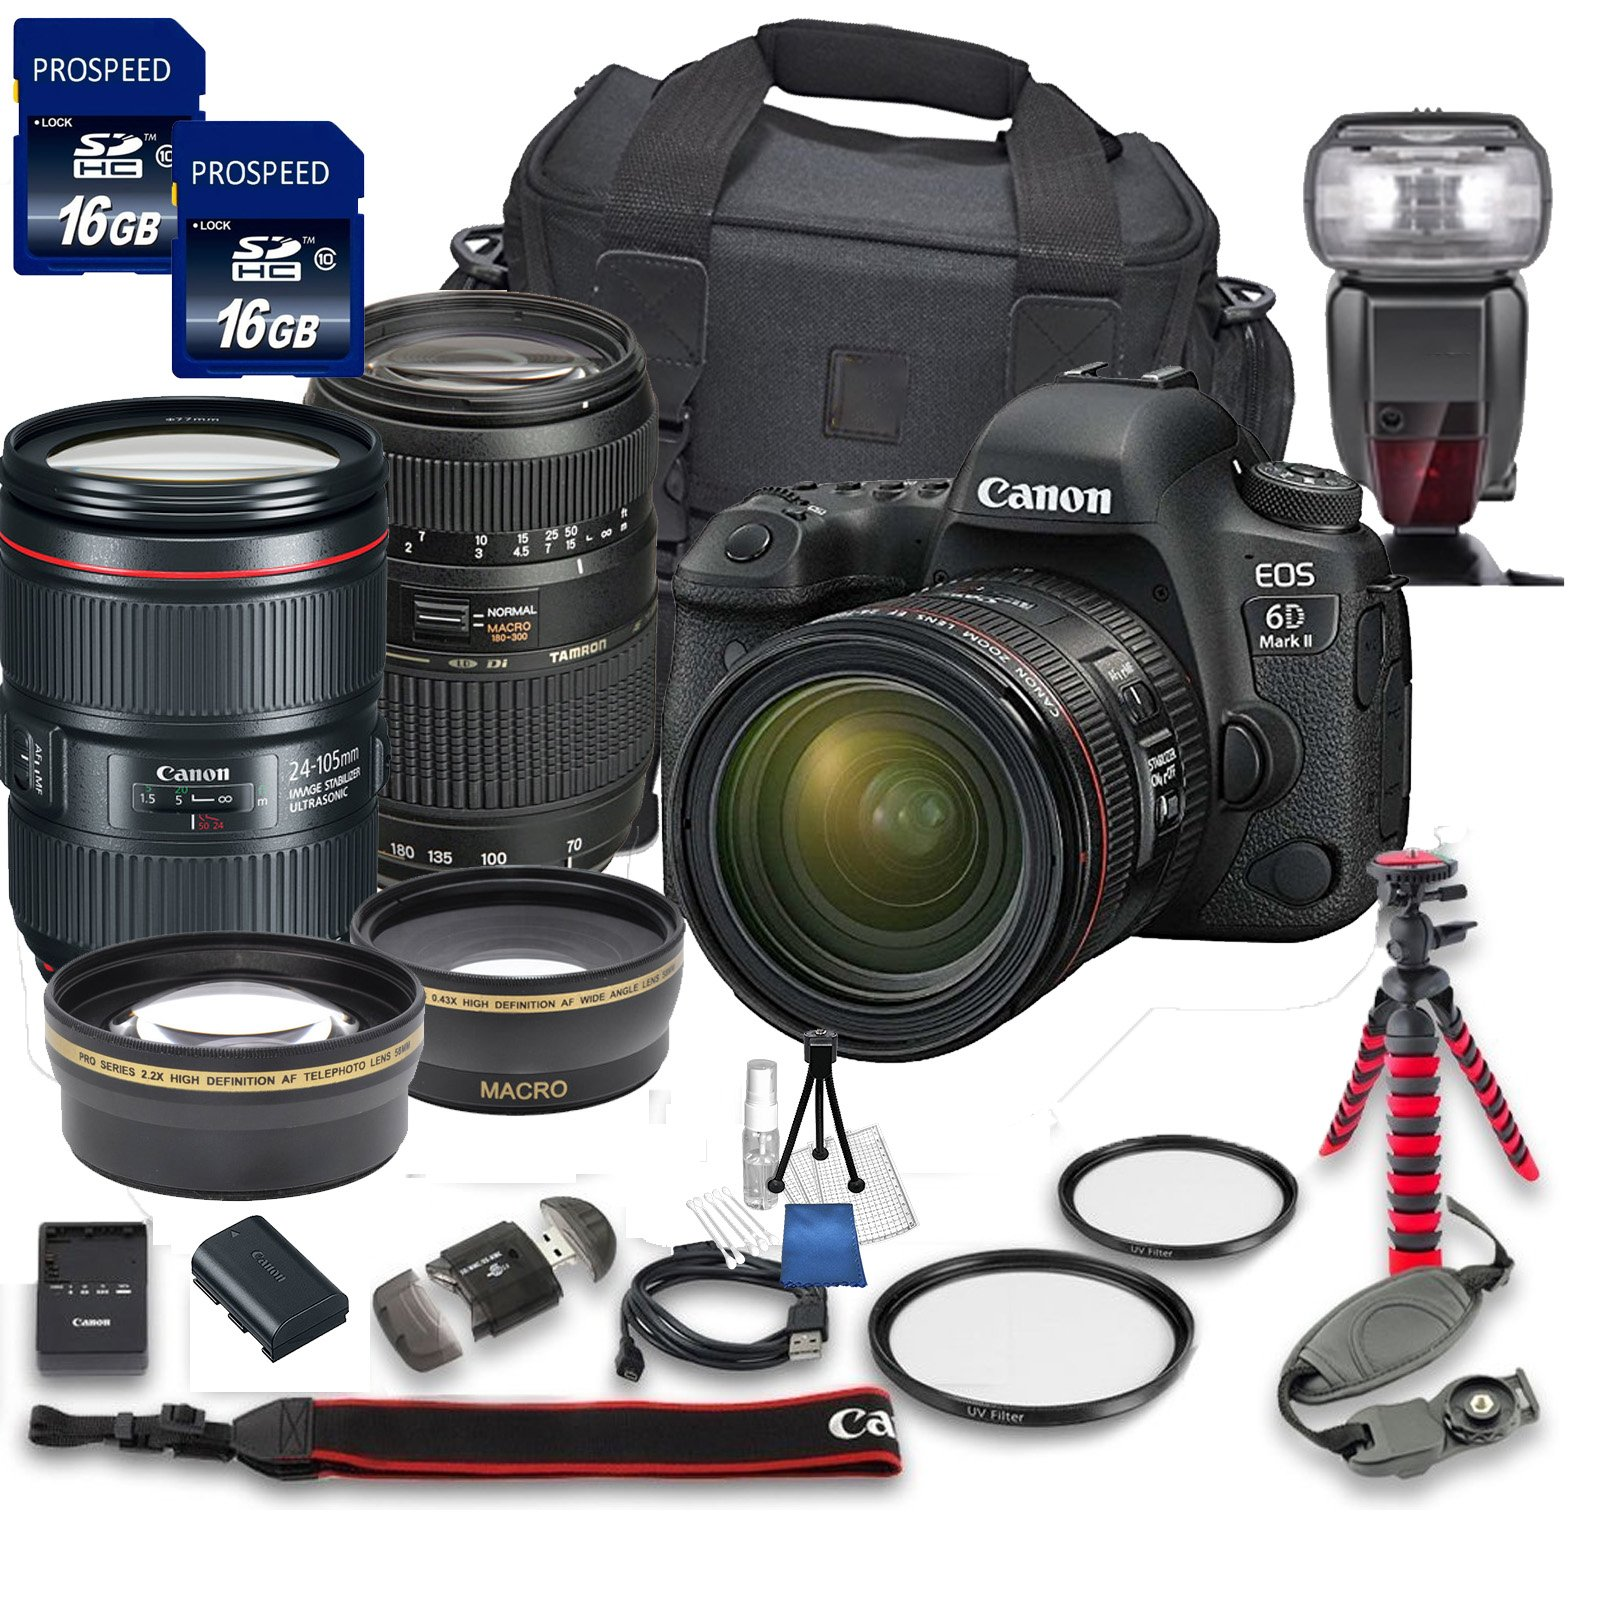 Canon EOS 6D MARK II DSLR Camera Bundle with Canon EF 24-105mm f/4L IS II USM Lens + Tamron 70-300mm f/4-5.6 Telephoto Lens + 2pc PROSPEED 16GB Memory Cards + Premium Accessory Bundle Kit (18 Items) by Canon